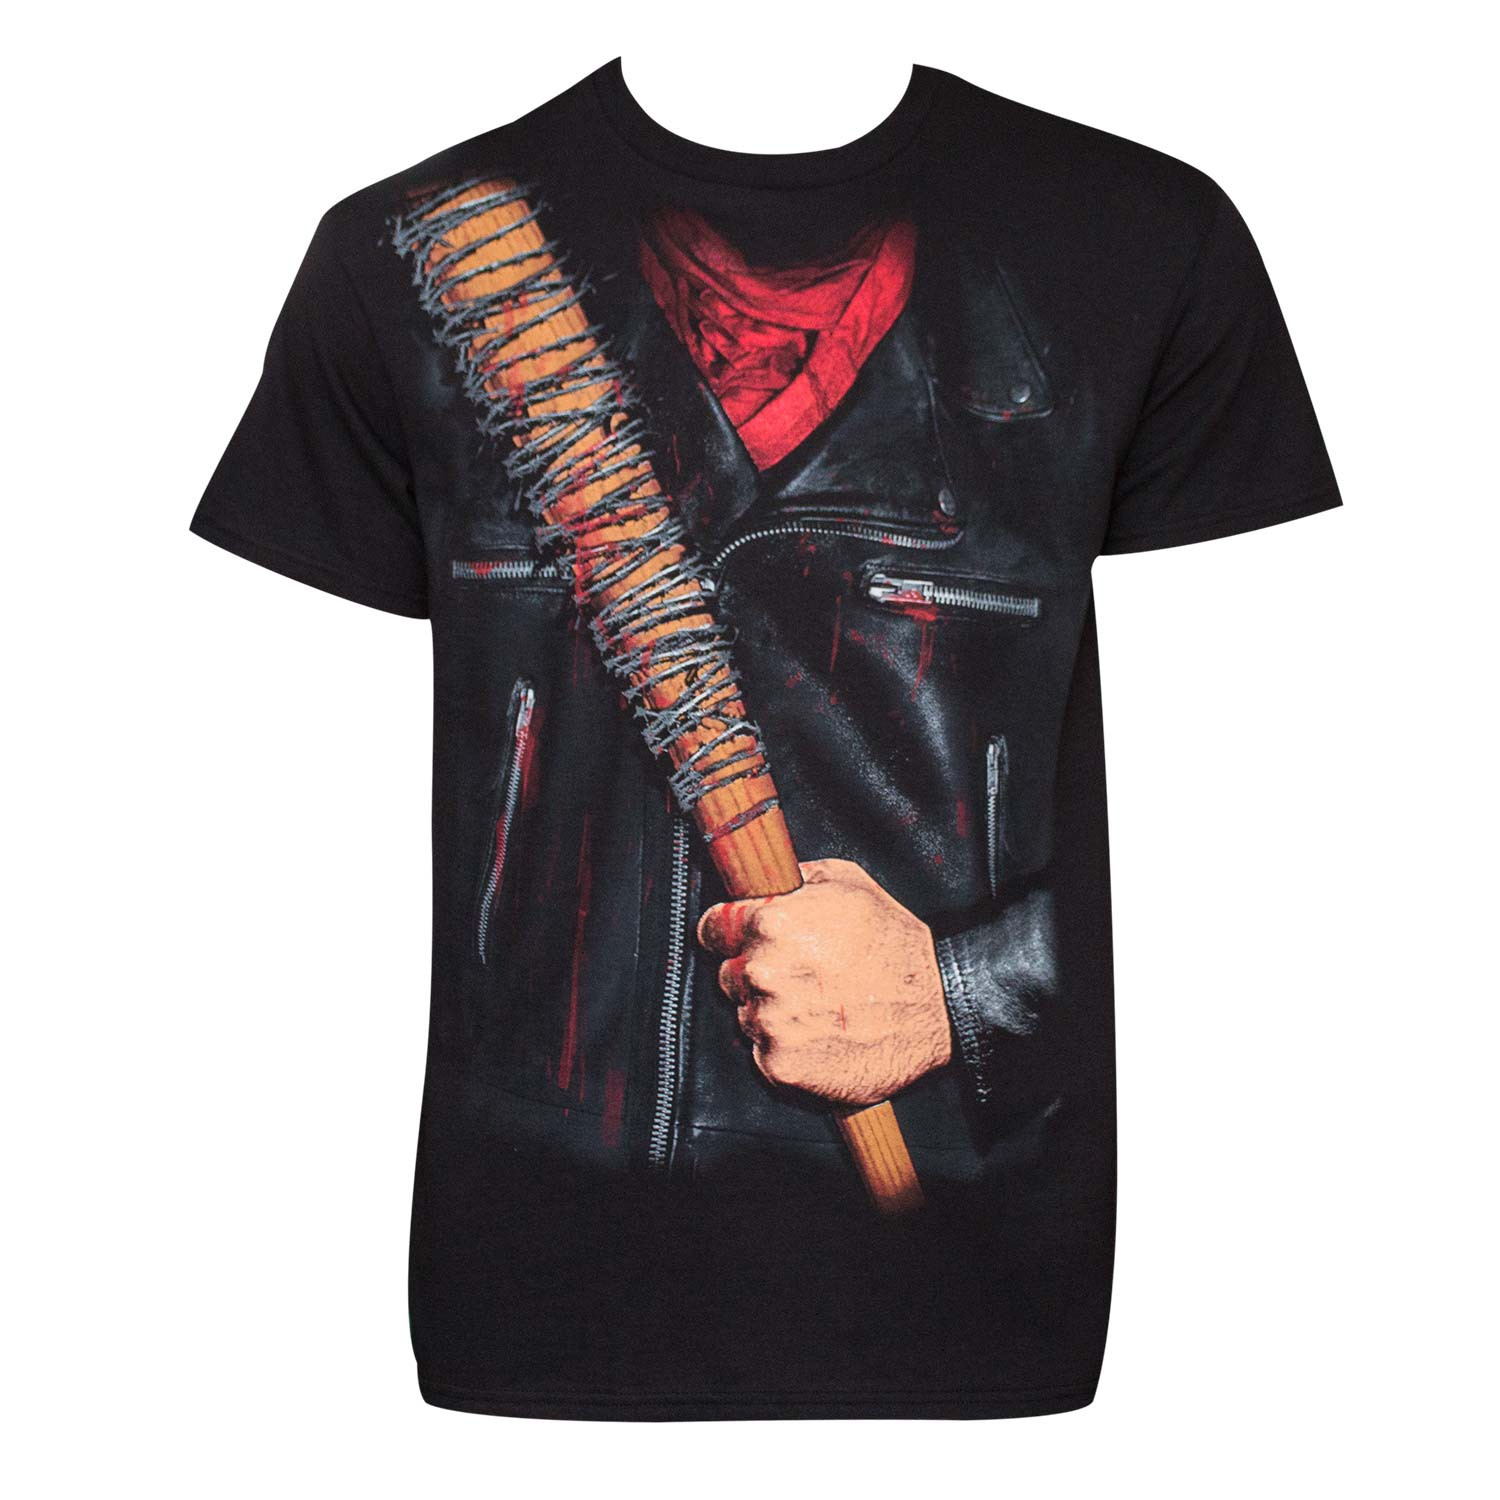 Walking Dead Negan Tee Shirt